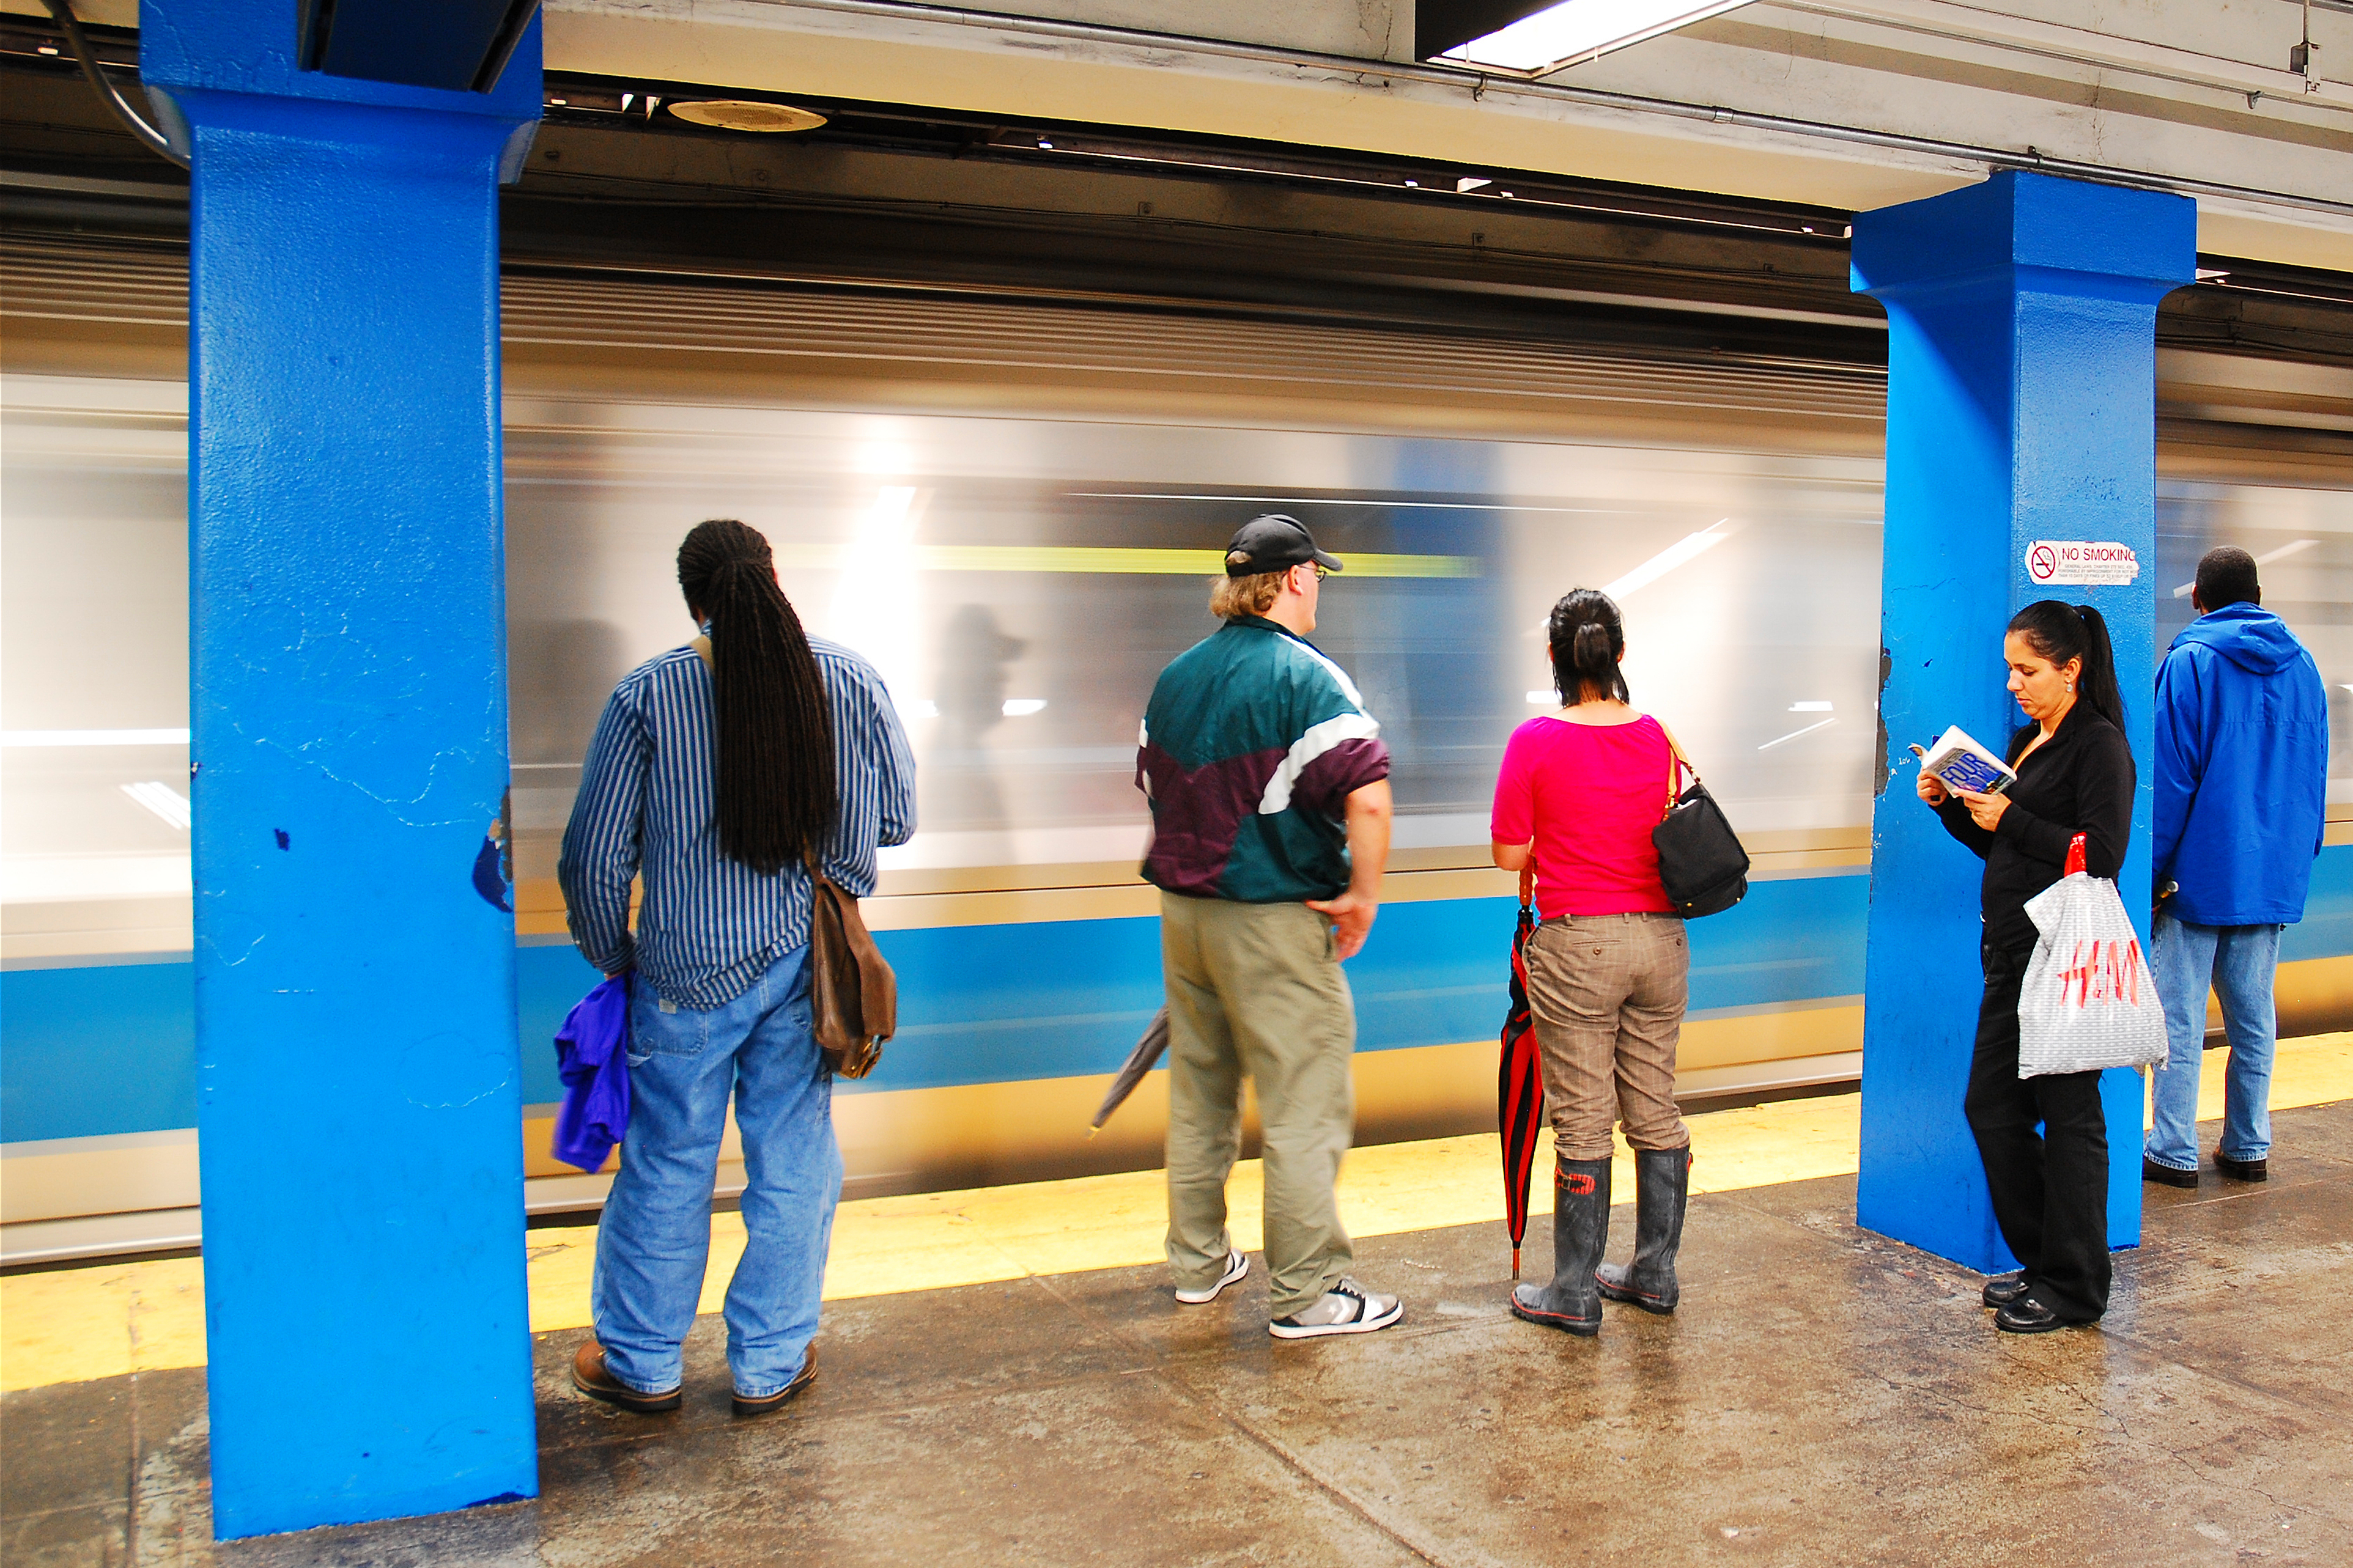 Commuters waiting for the Blue Line in Boston.